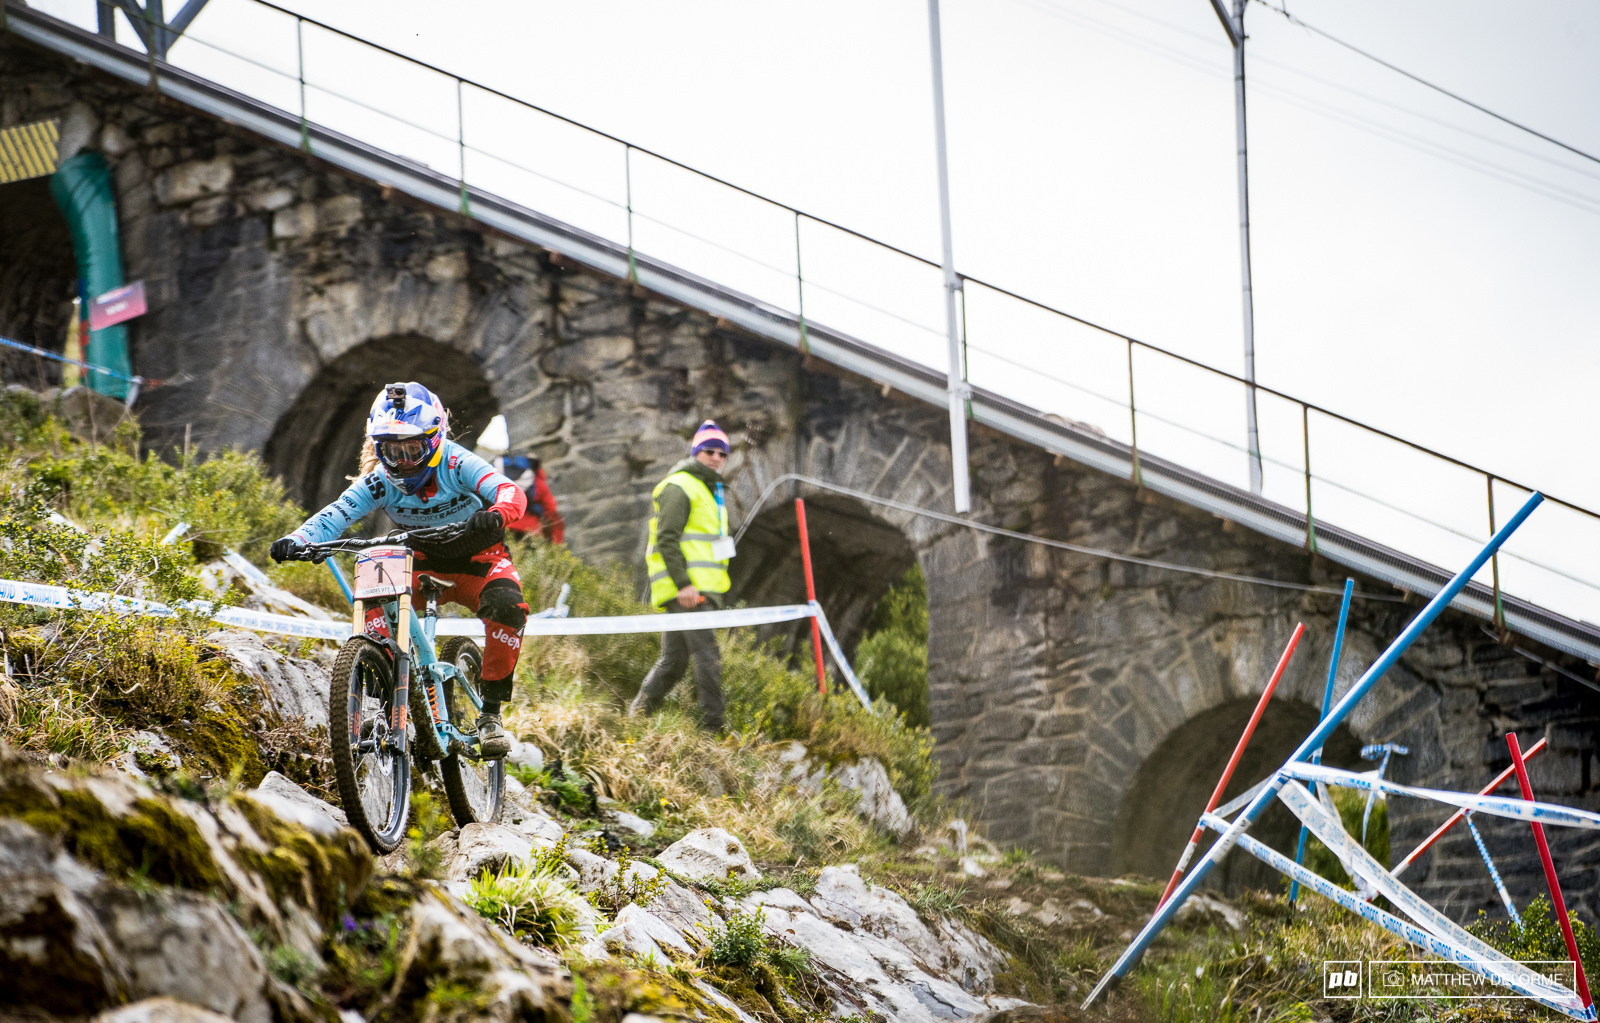 Rachel Atherton easily took the fastest time in training today. She was some four seconds up on the field.